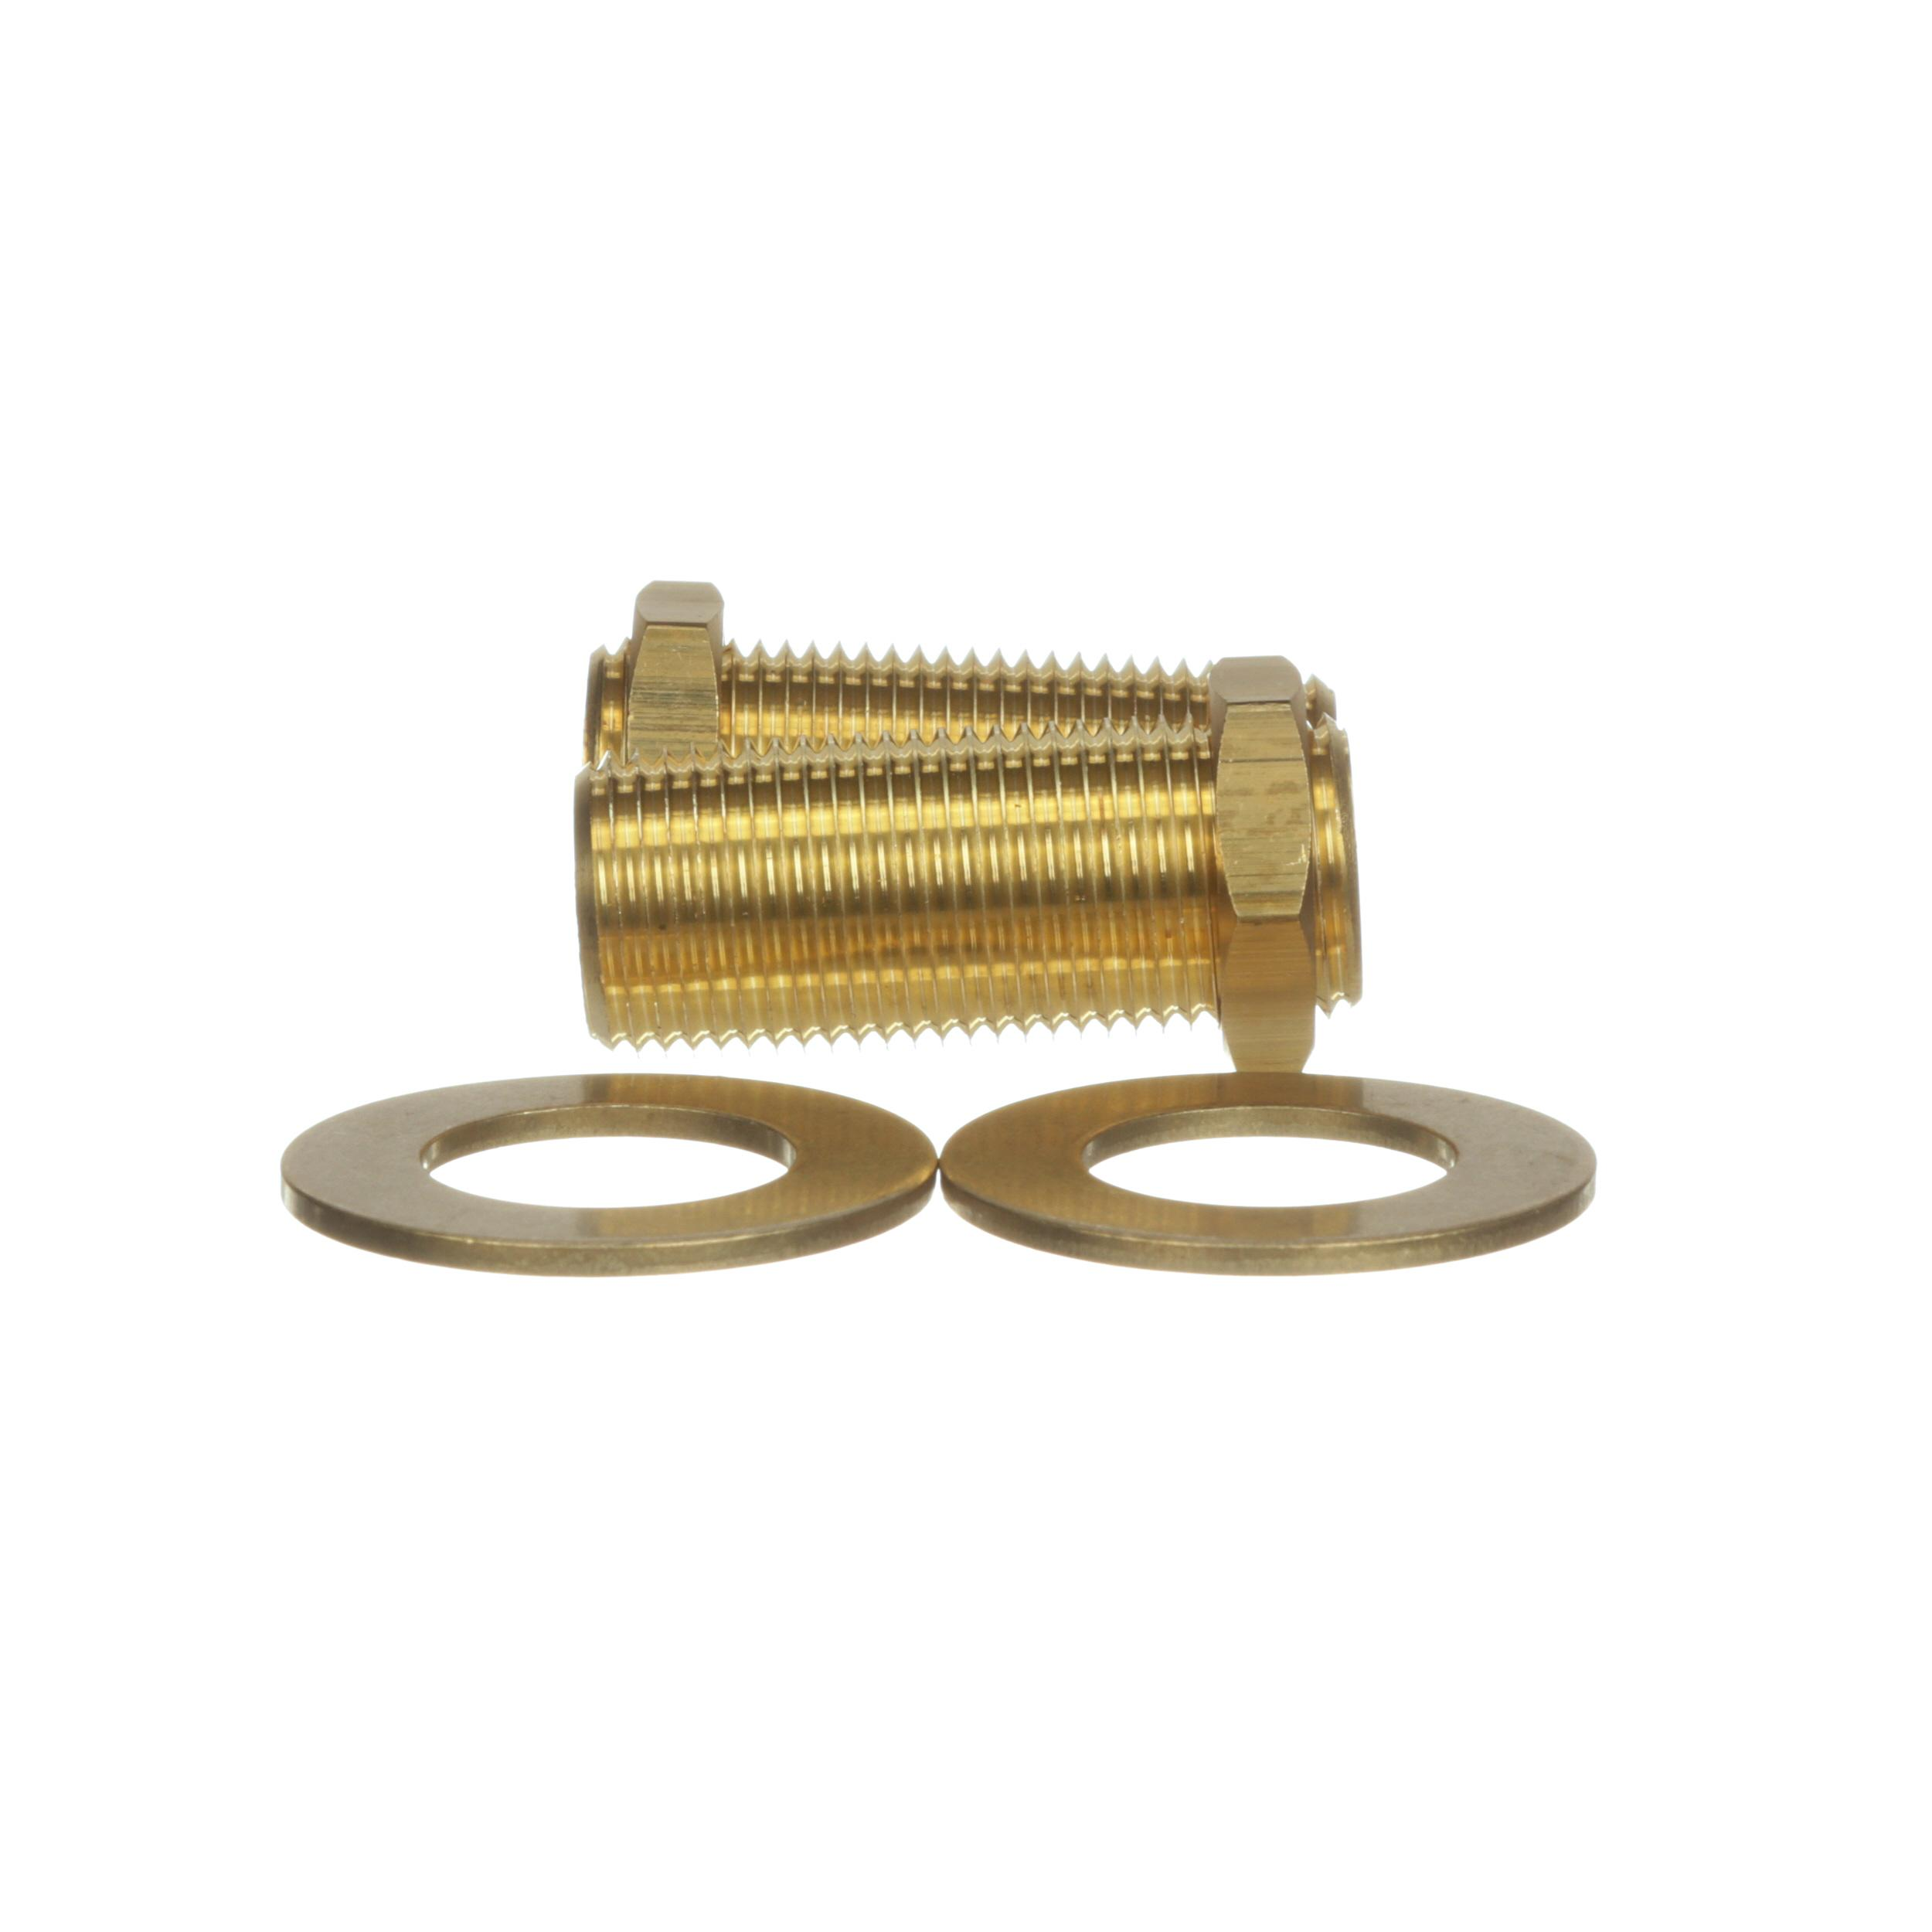 "T&S BRASS SUPPLY NIPPLE KIT, 1/2"" NPT X"